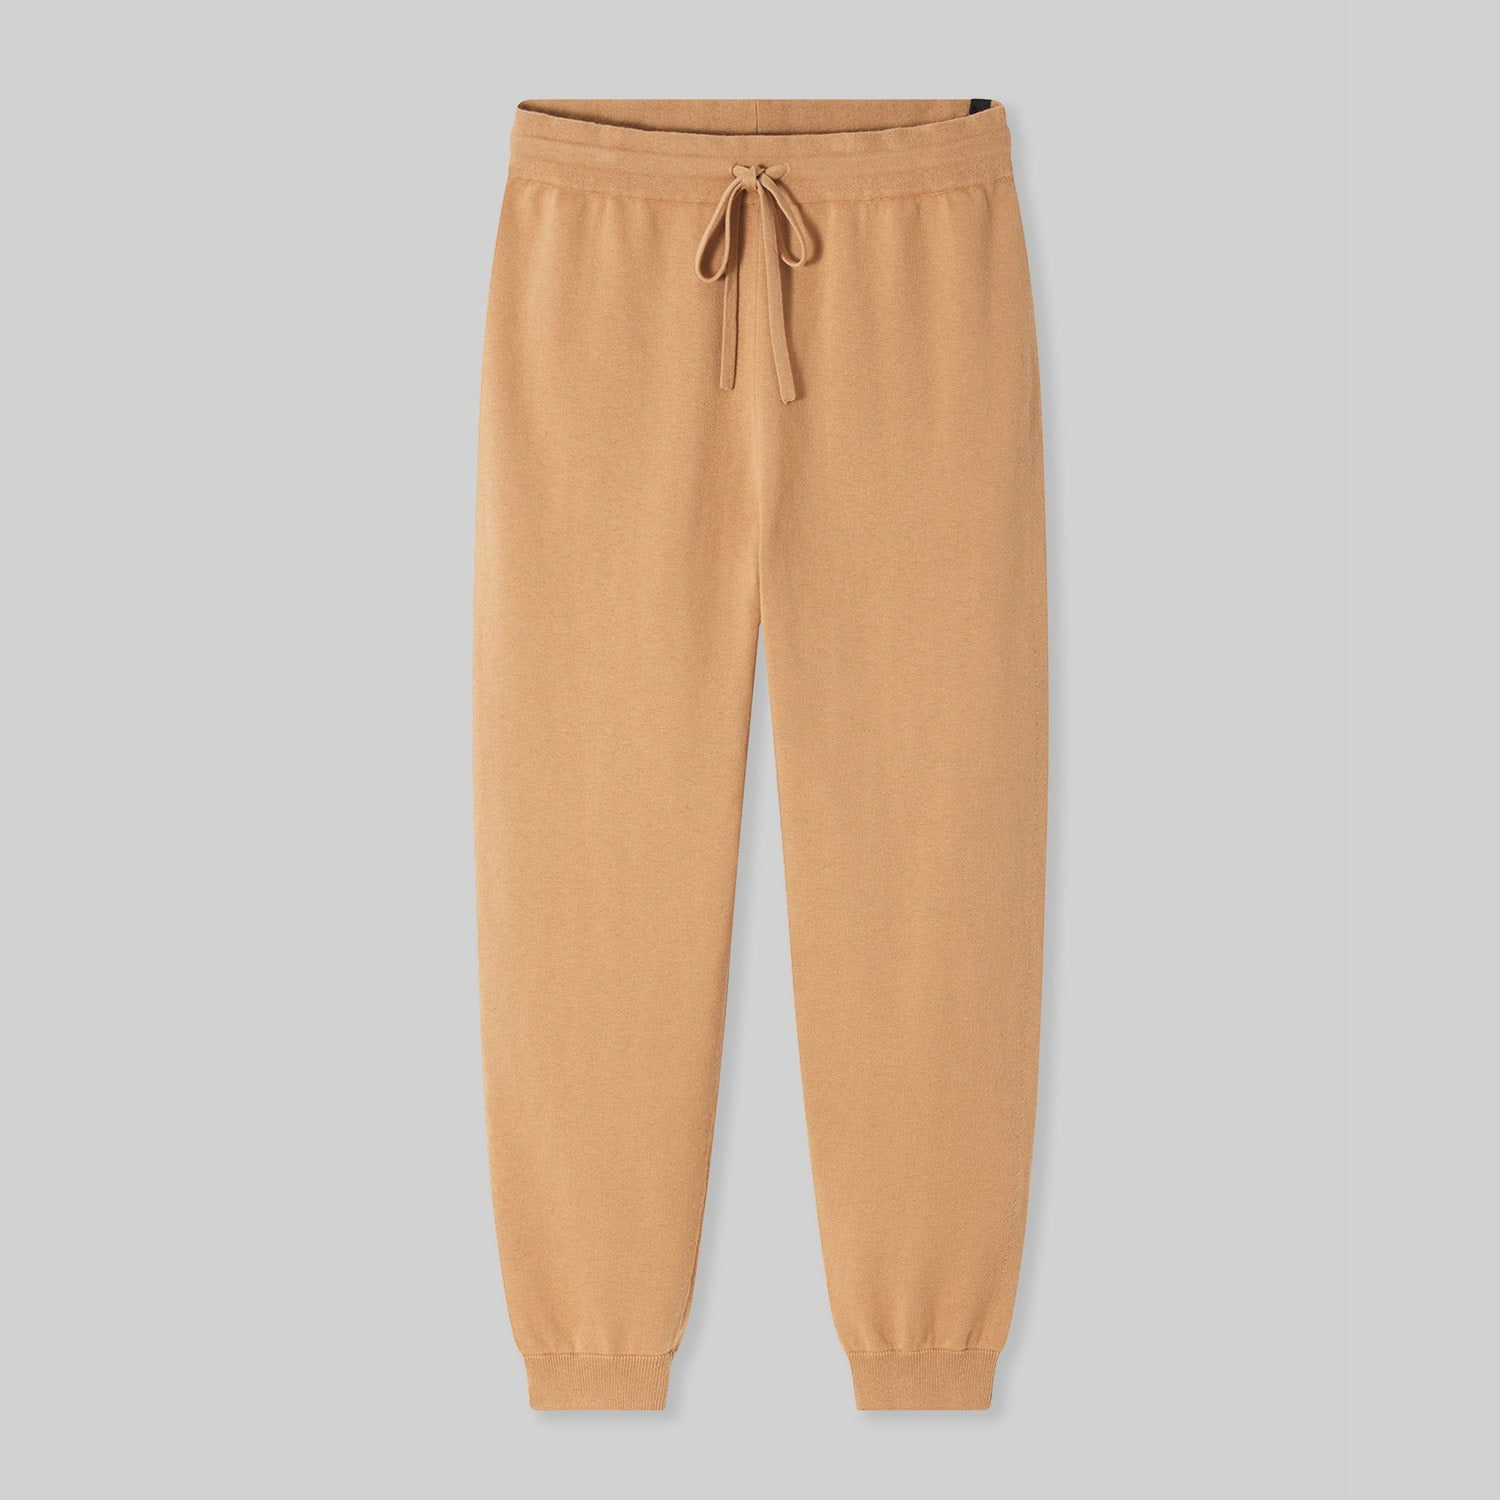 Lahgo Sleepwear Cotton Silk Jogger - #Ginger